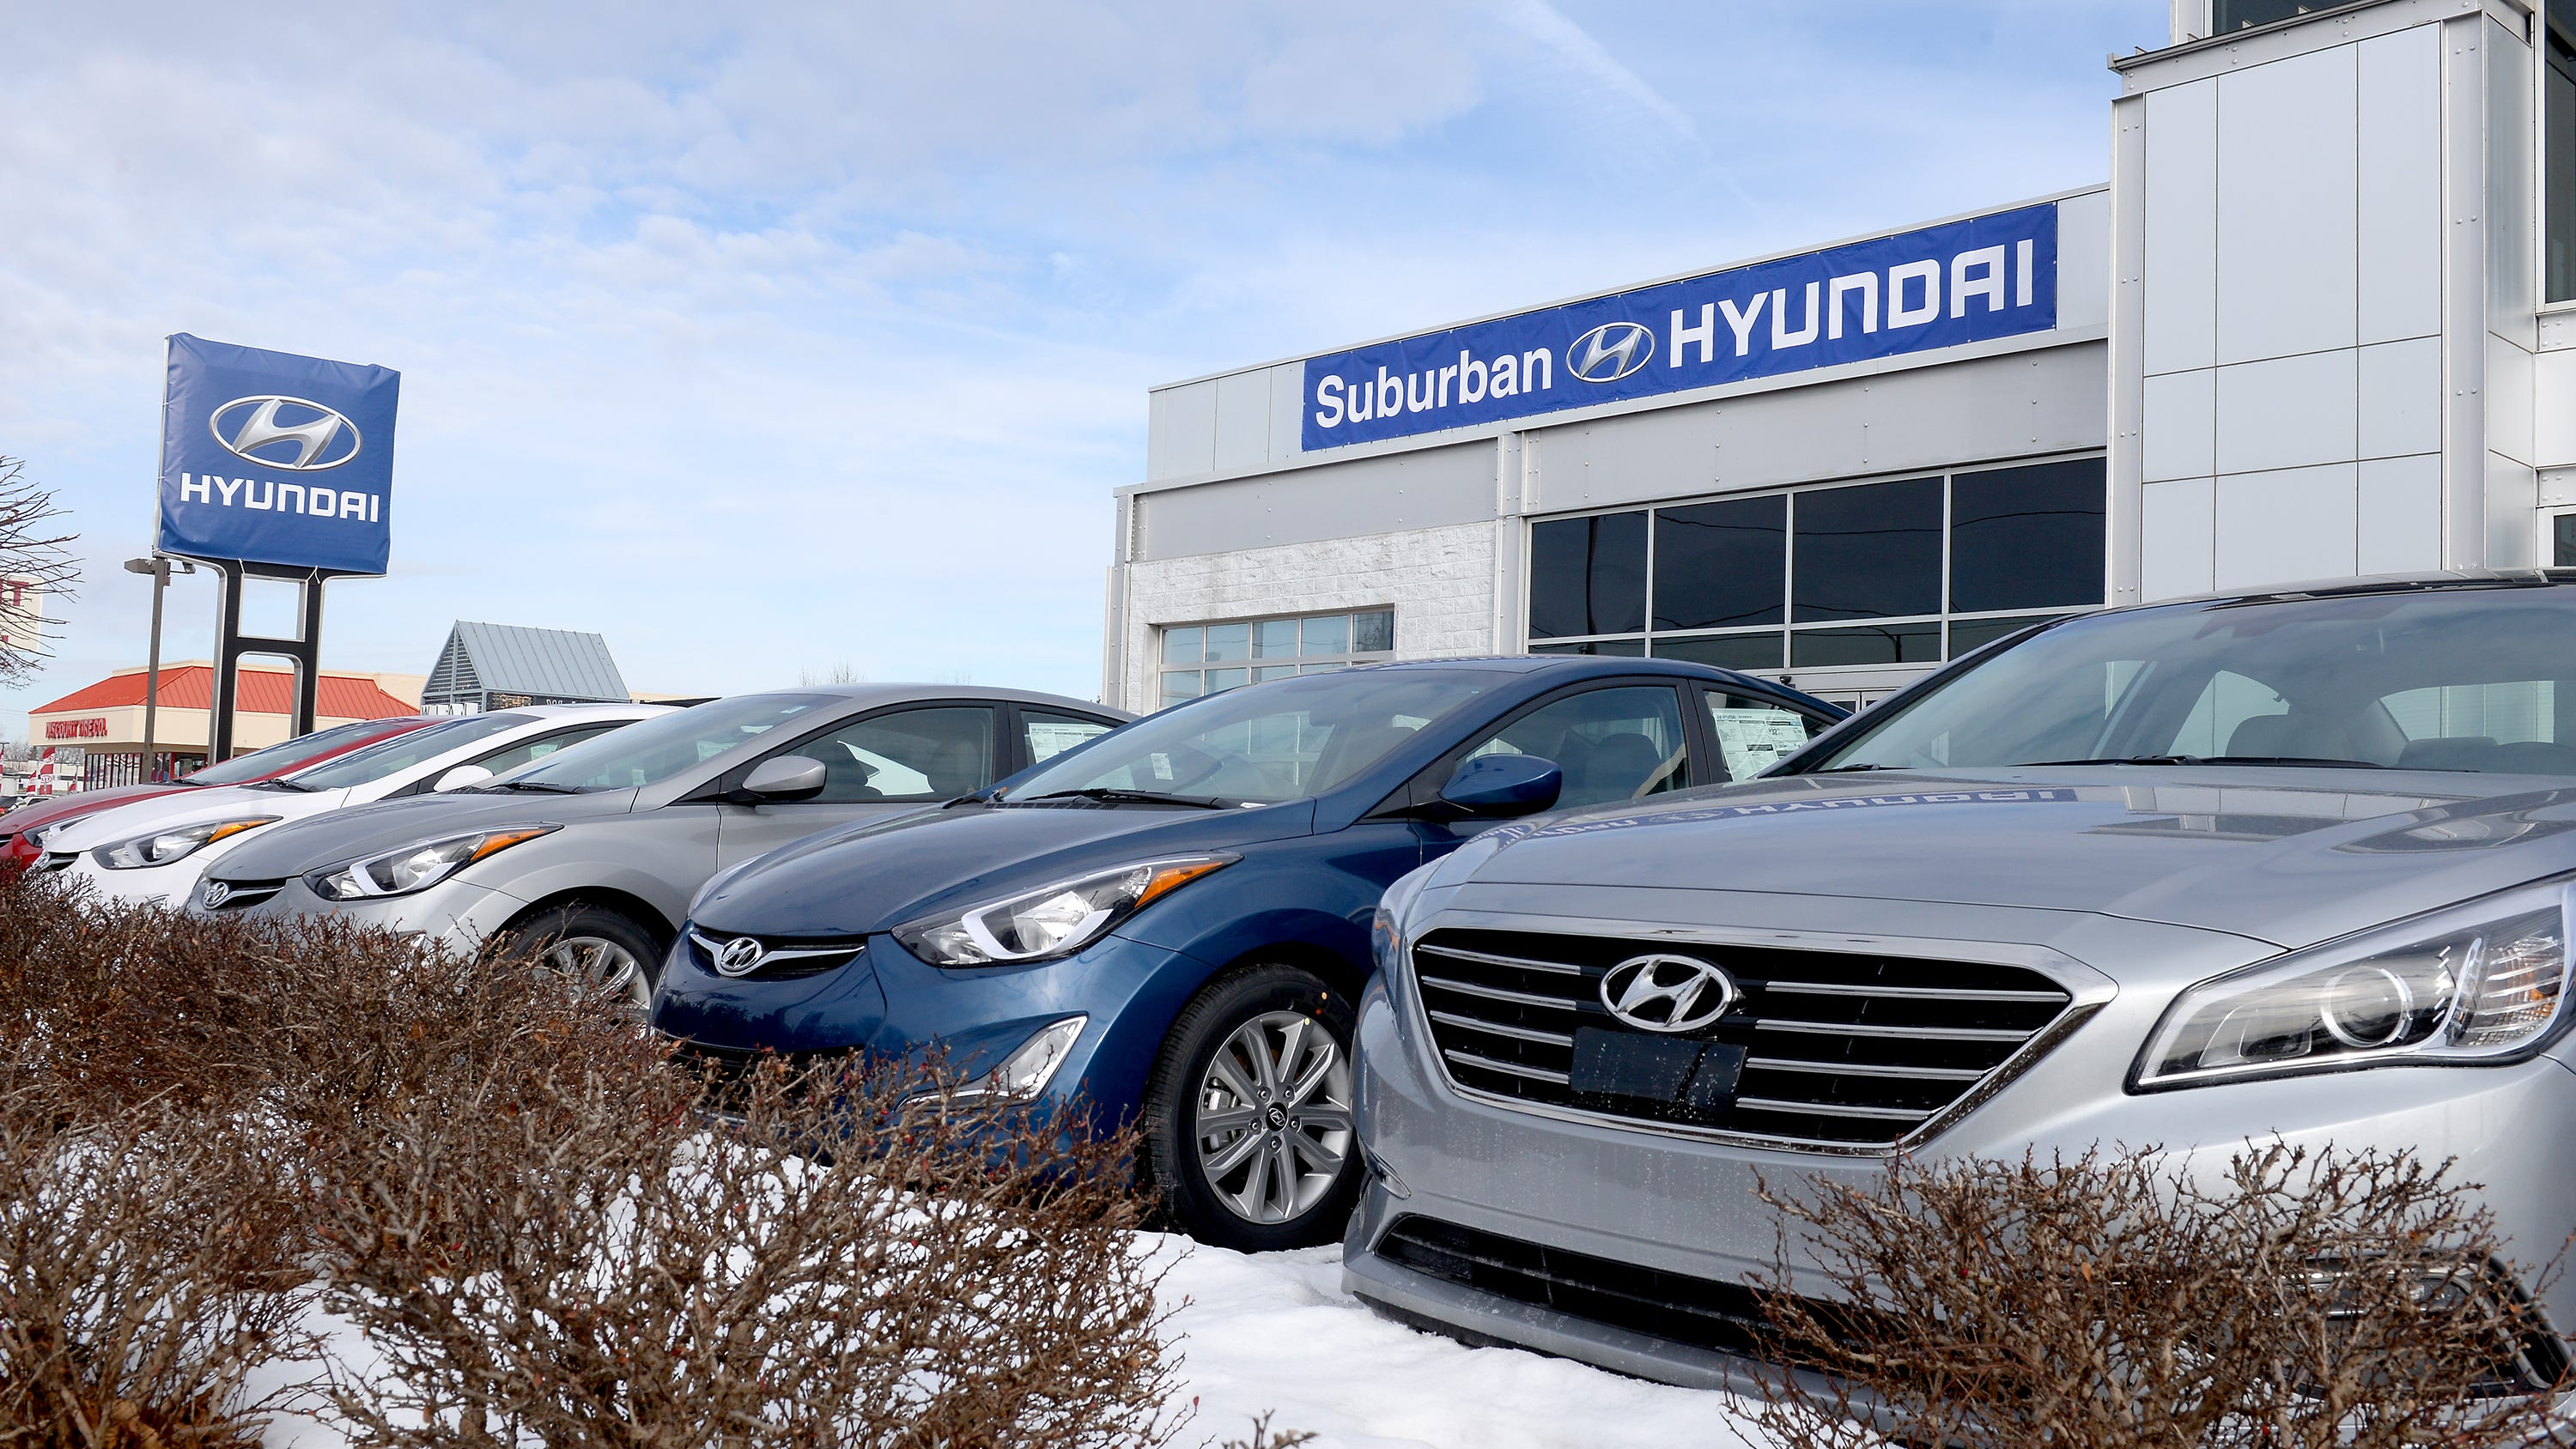 new hyundai dealership opens in lansing new hyundai dealership opens in lansing